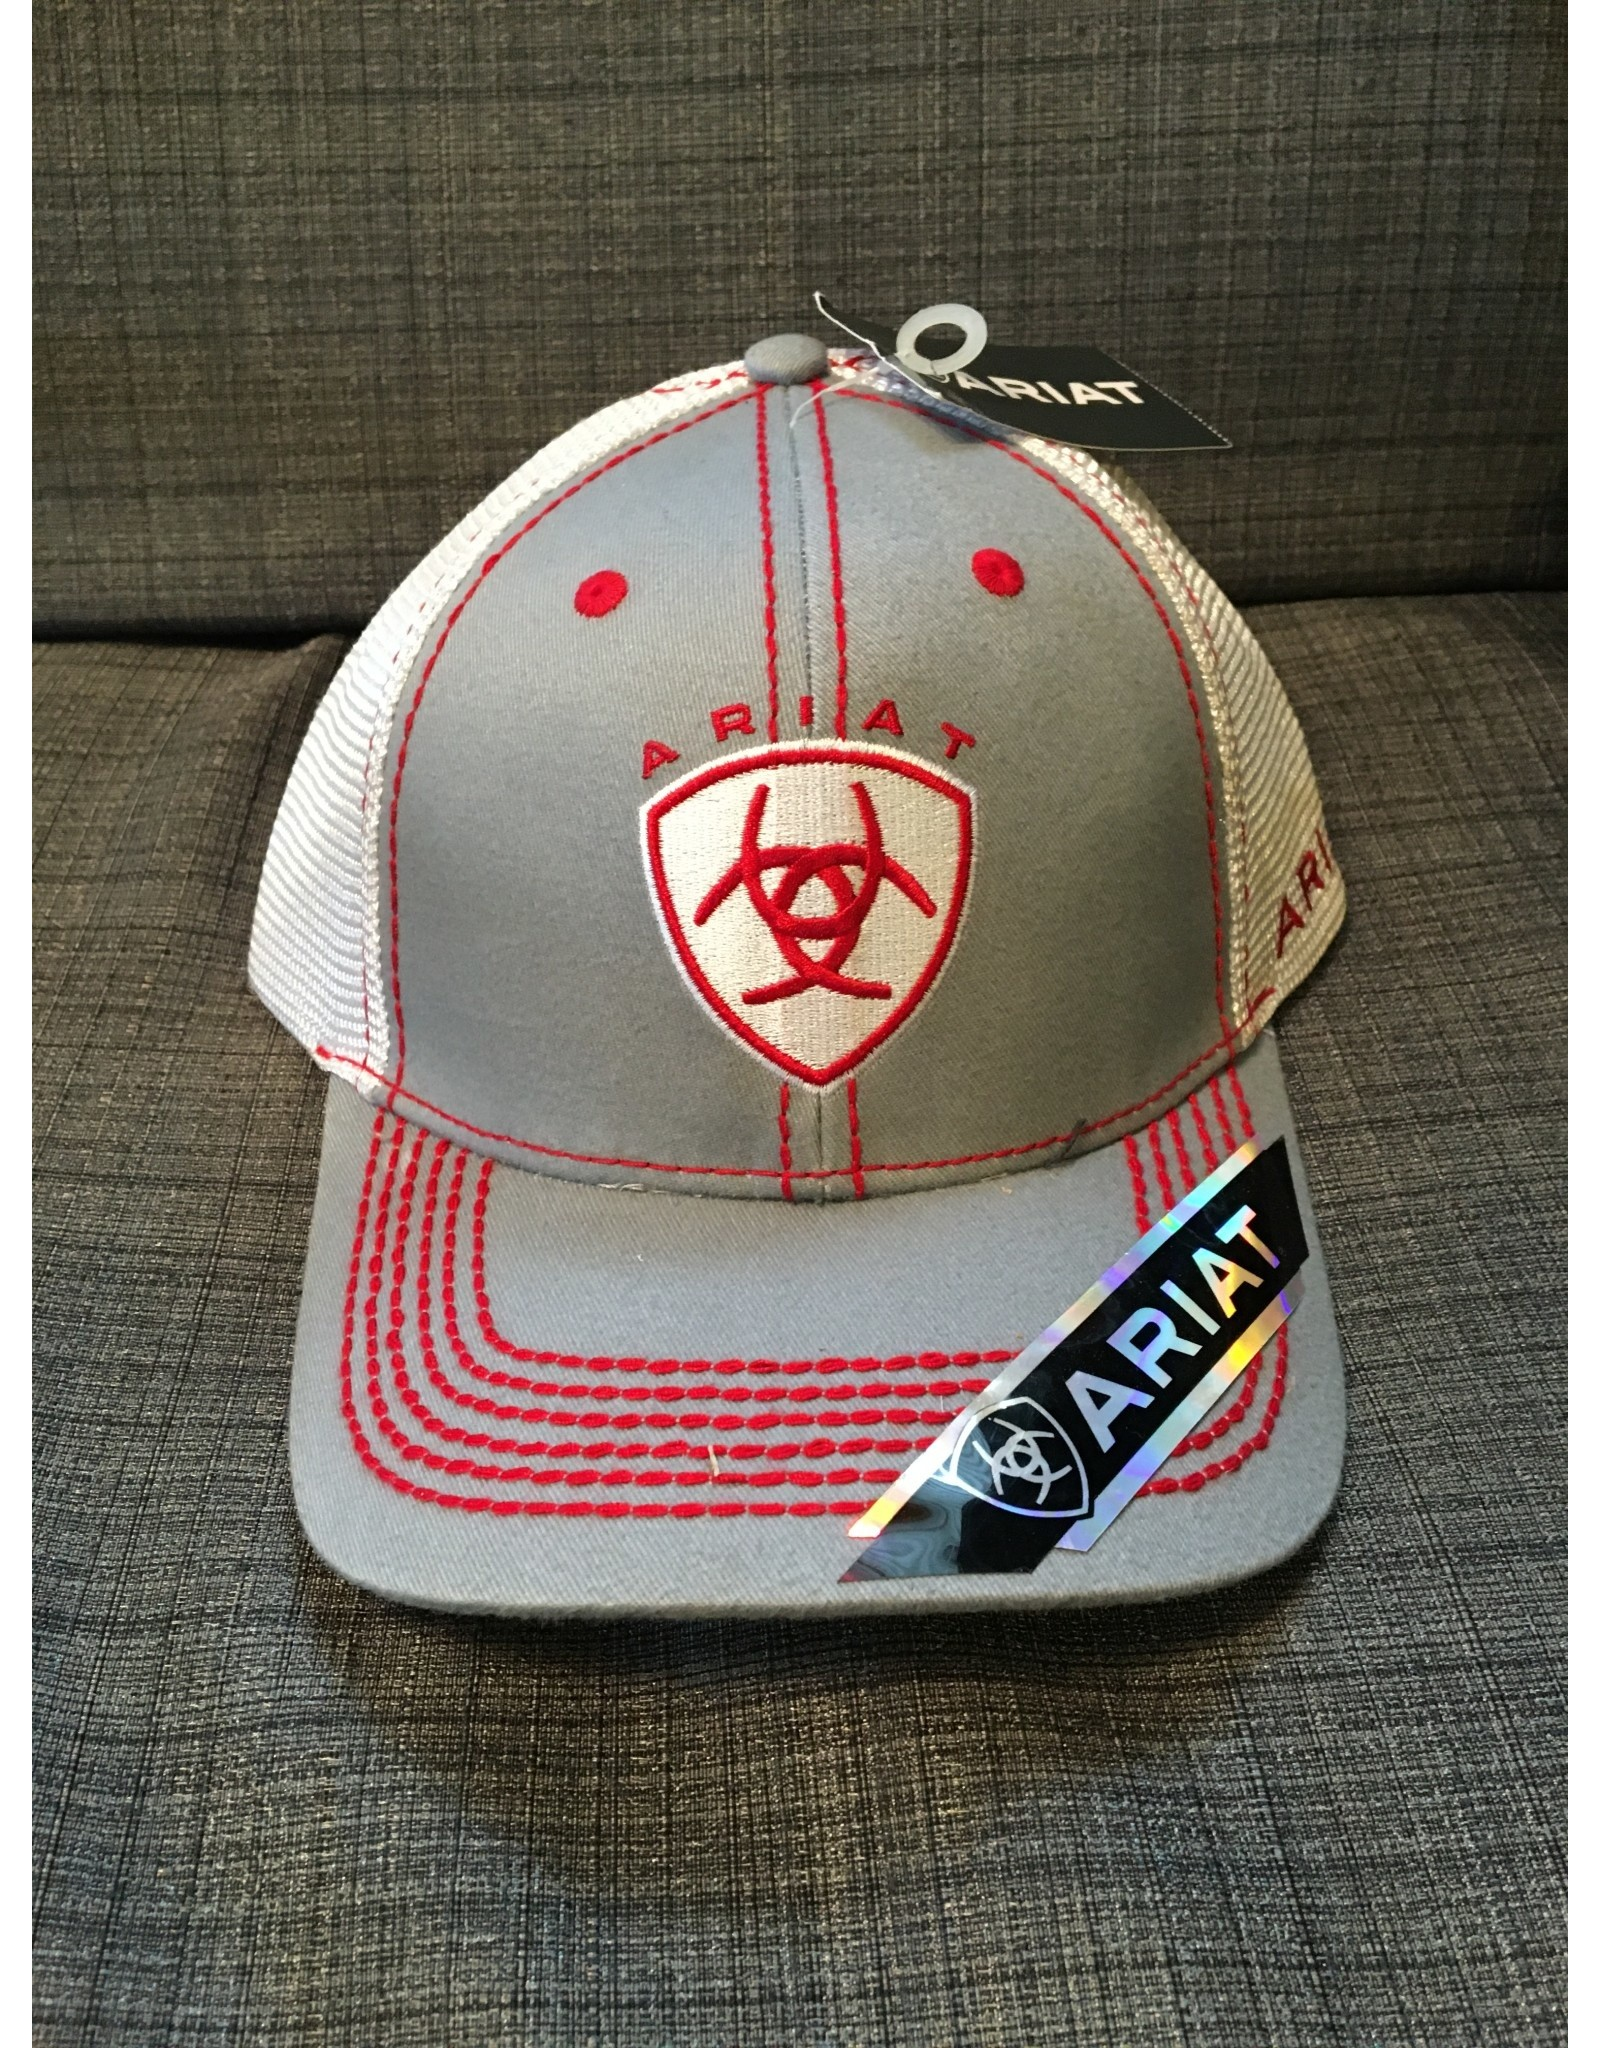 ARIAT LOGO GREY WITH RED SITITCHING MEN'S BALL CAP